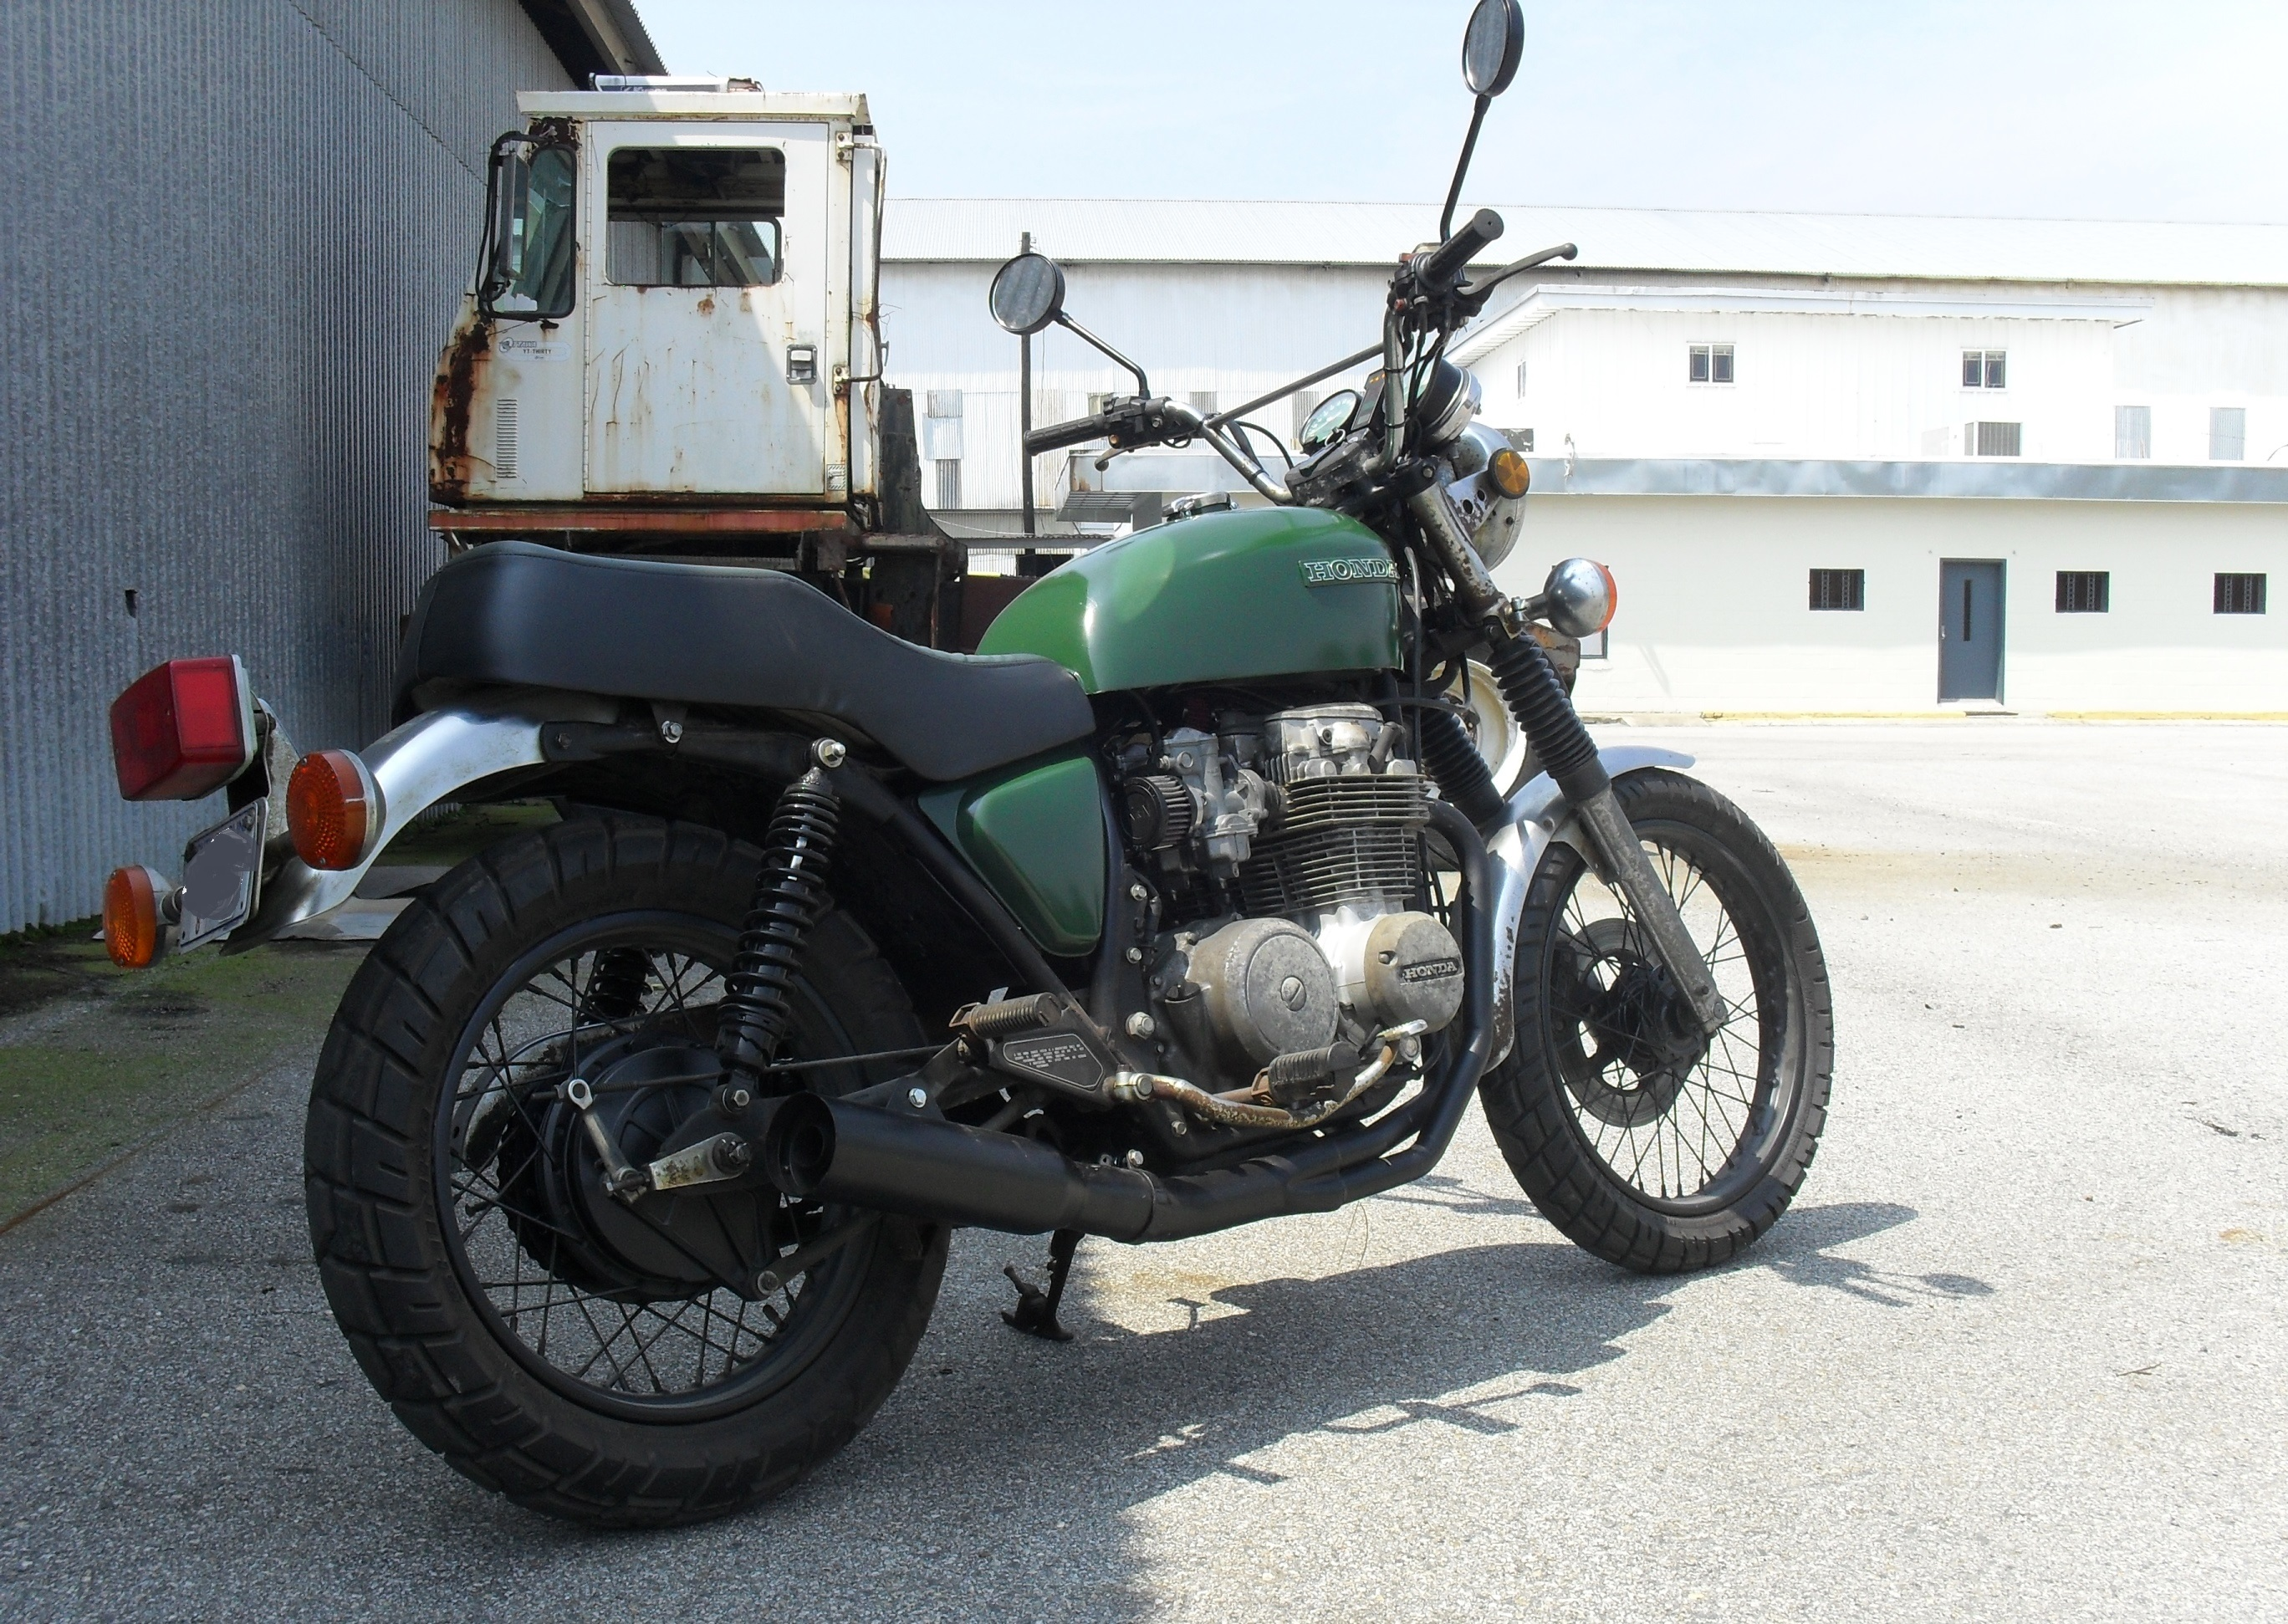 Cb650 Life On 2 Wheels Other Stuff Cb650c Wiring Diagram 1980 Honda With 1974 Cb750 Gas Tank A Set Of 1979 Standard